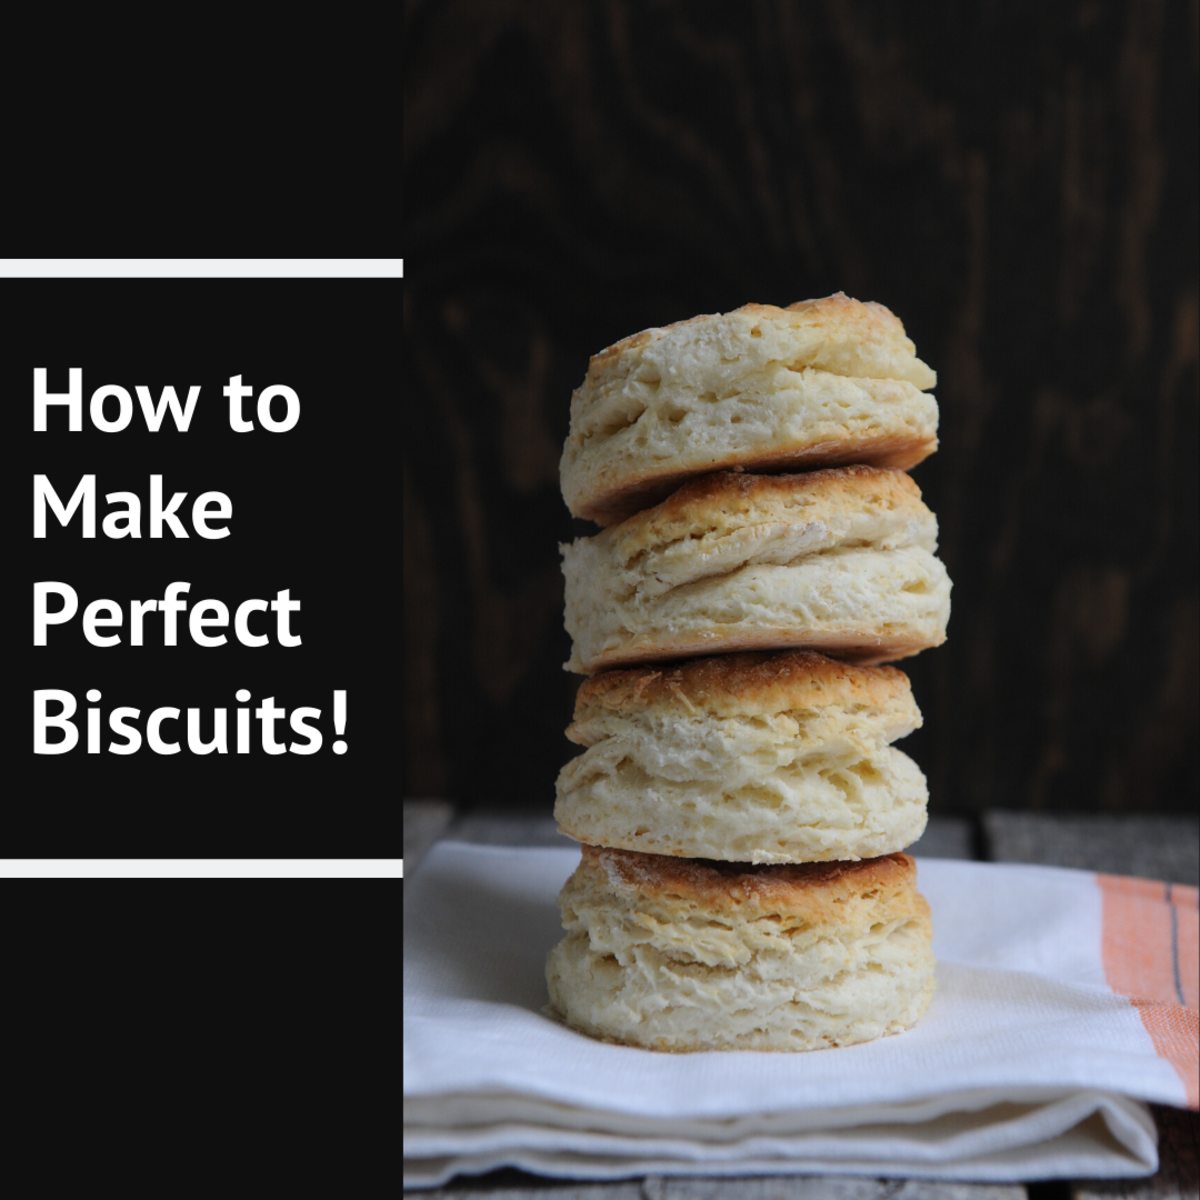 These flaky biscuits are perfect for the whole family!